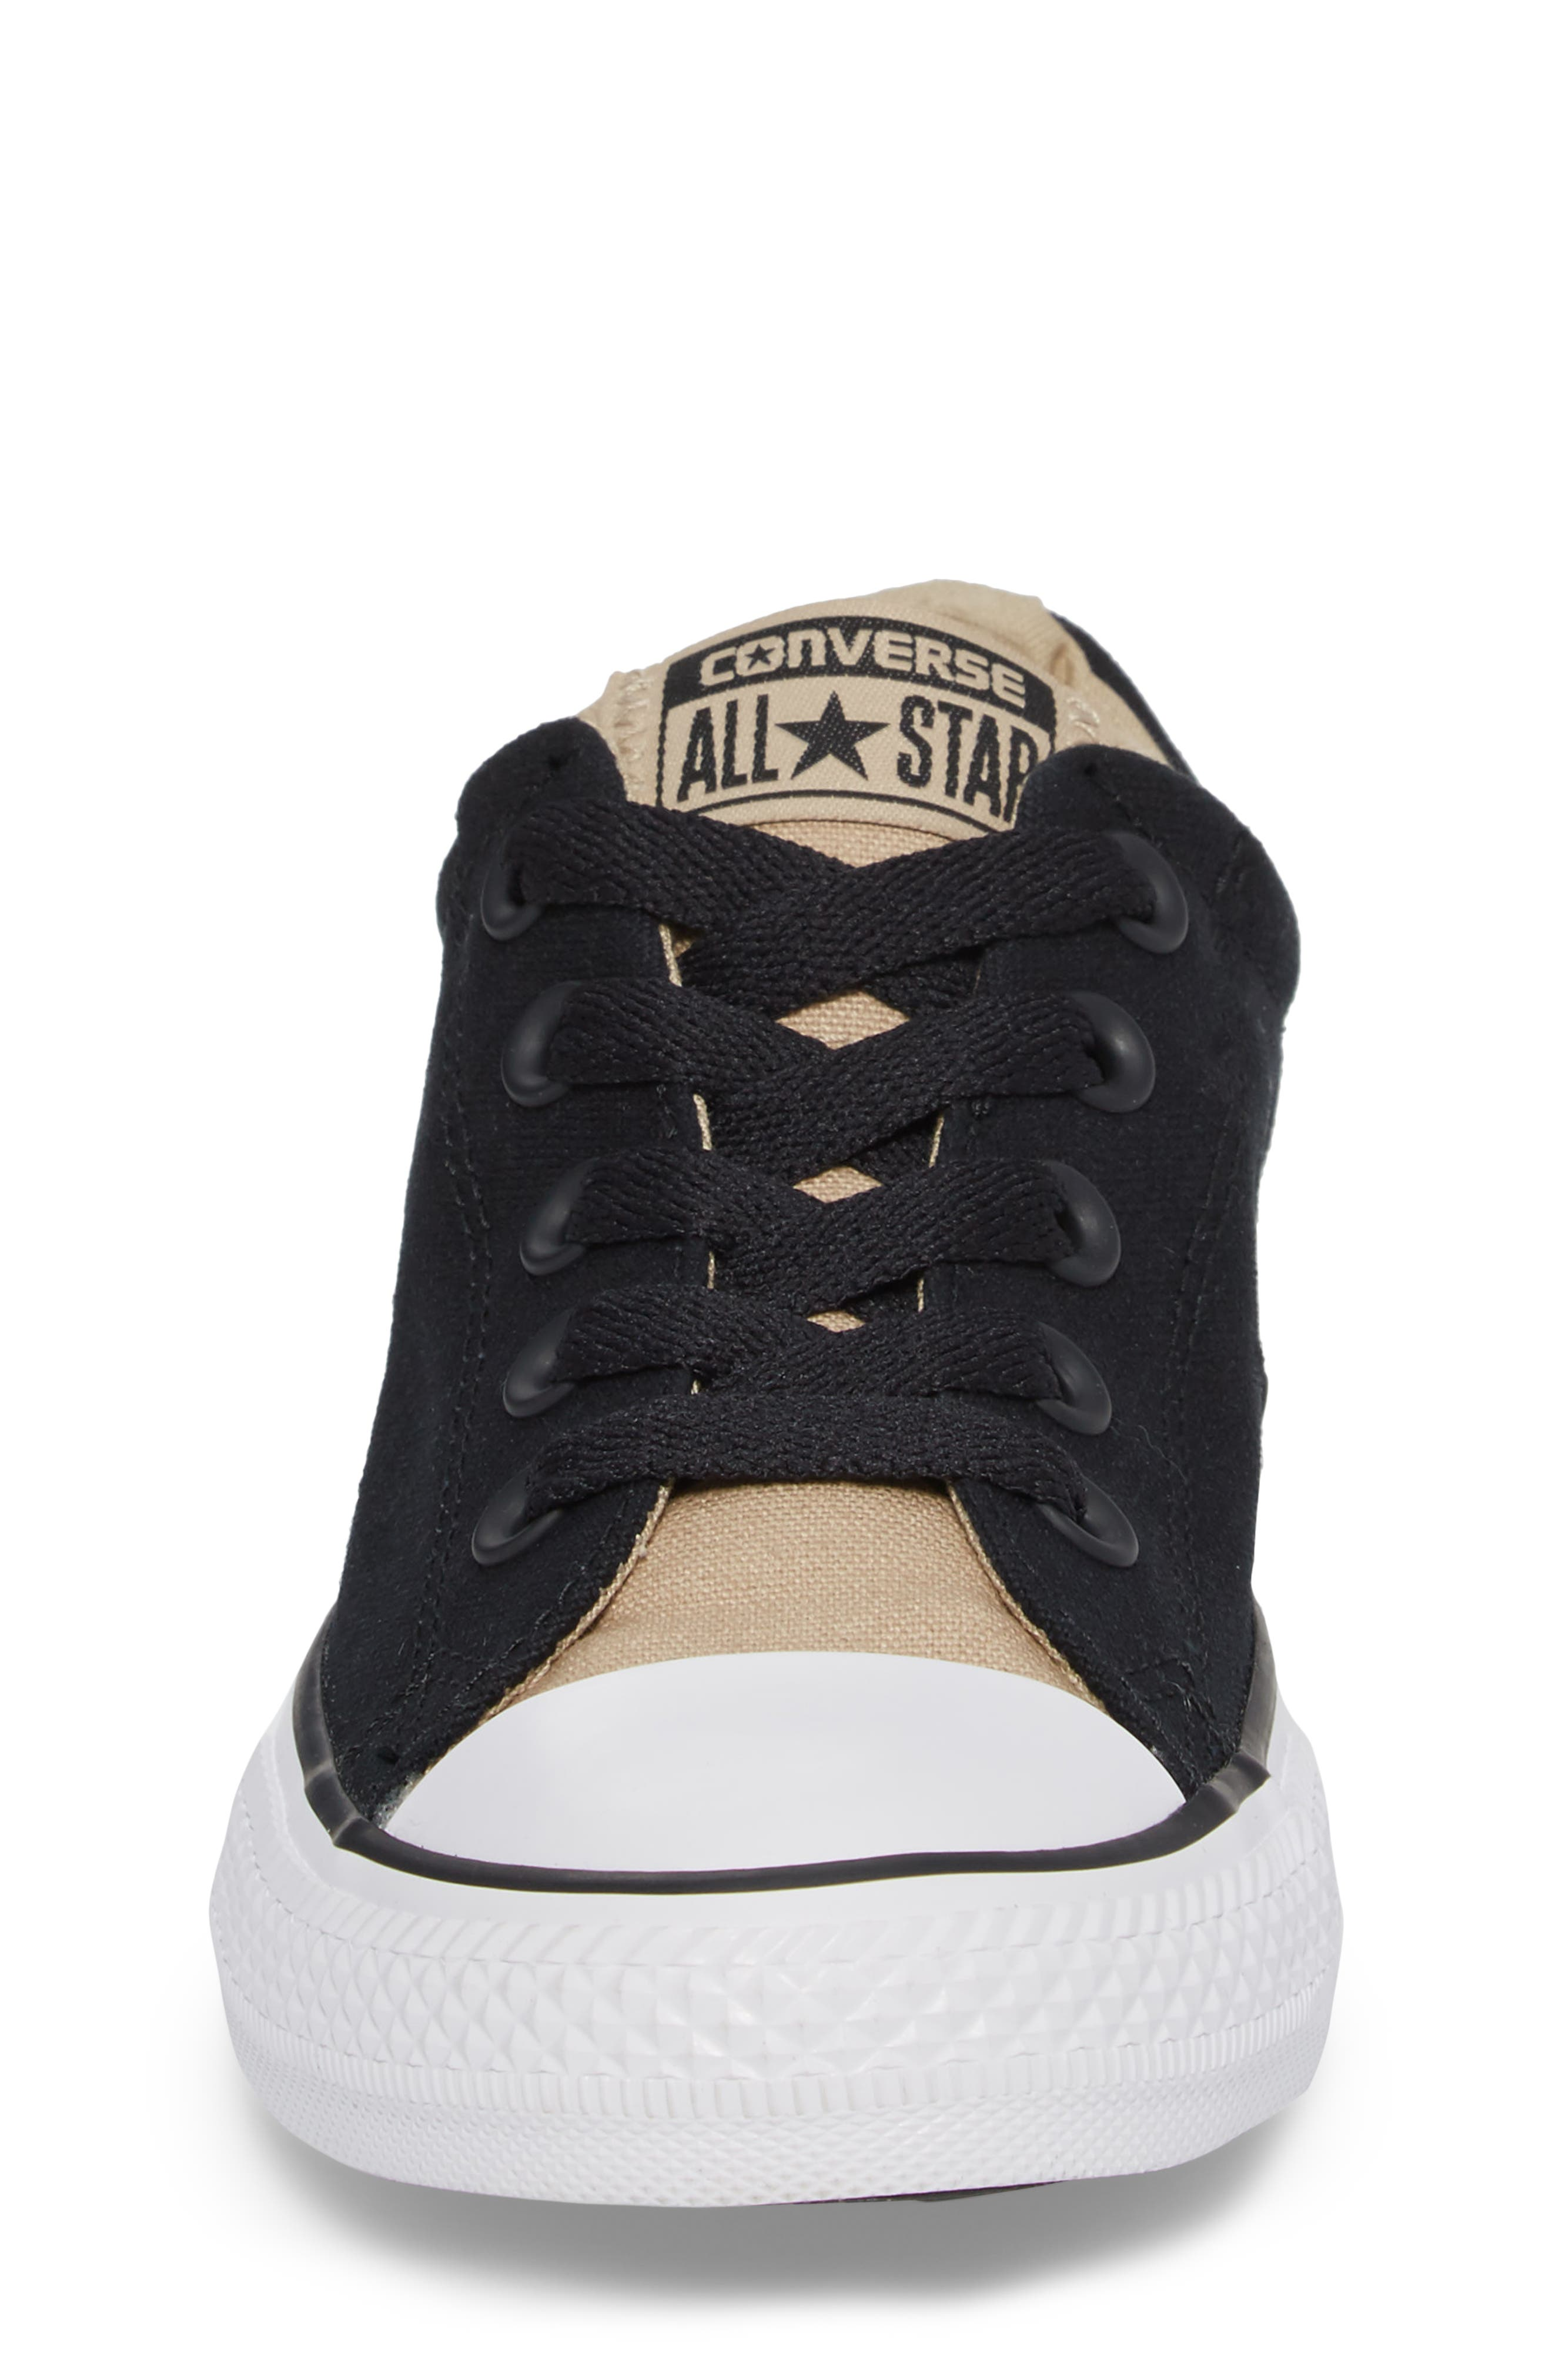 All Star<sup>®</sup> Street Slip Low Top Sneaker,                             Alternate thumbnail 4, color,                             001